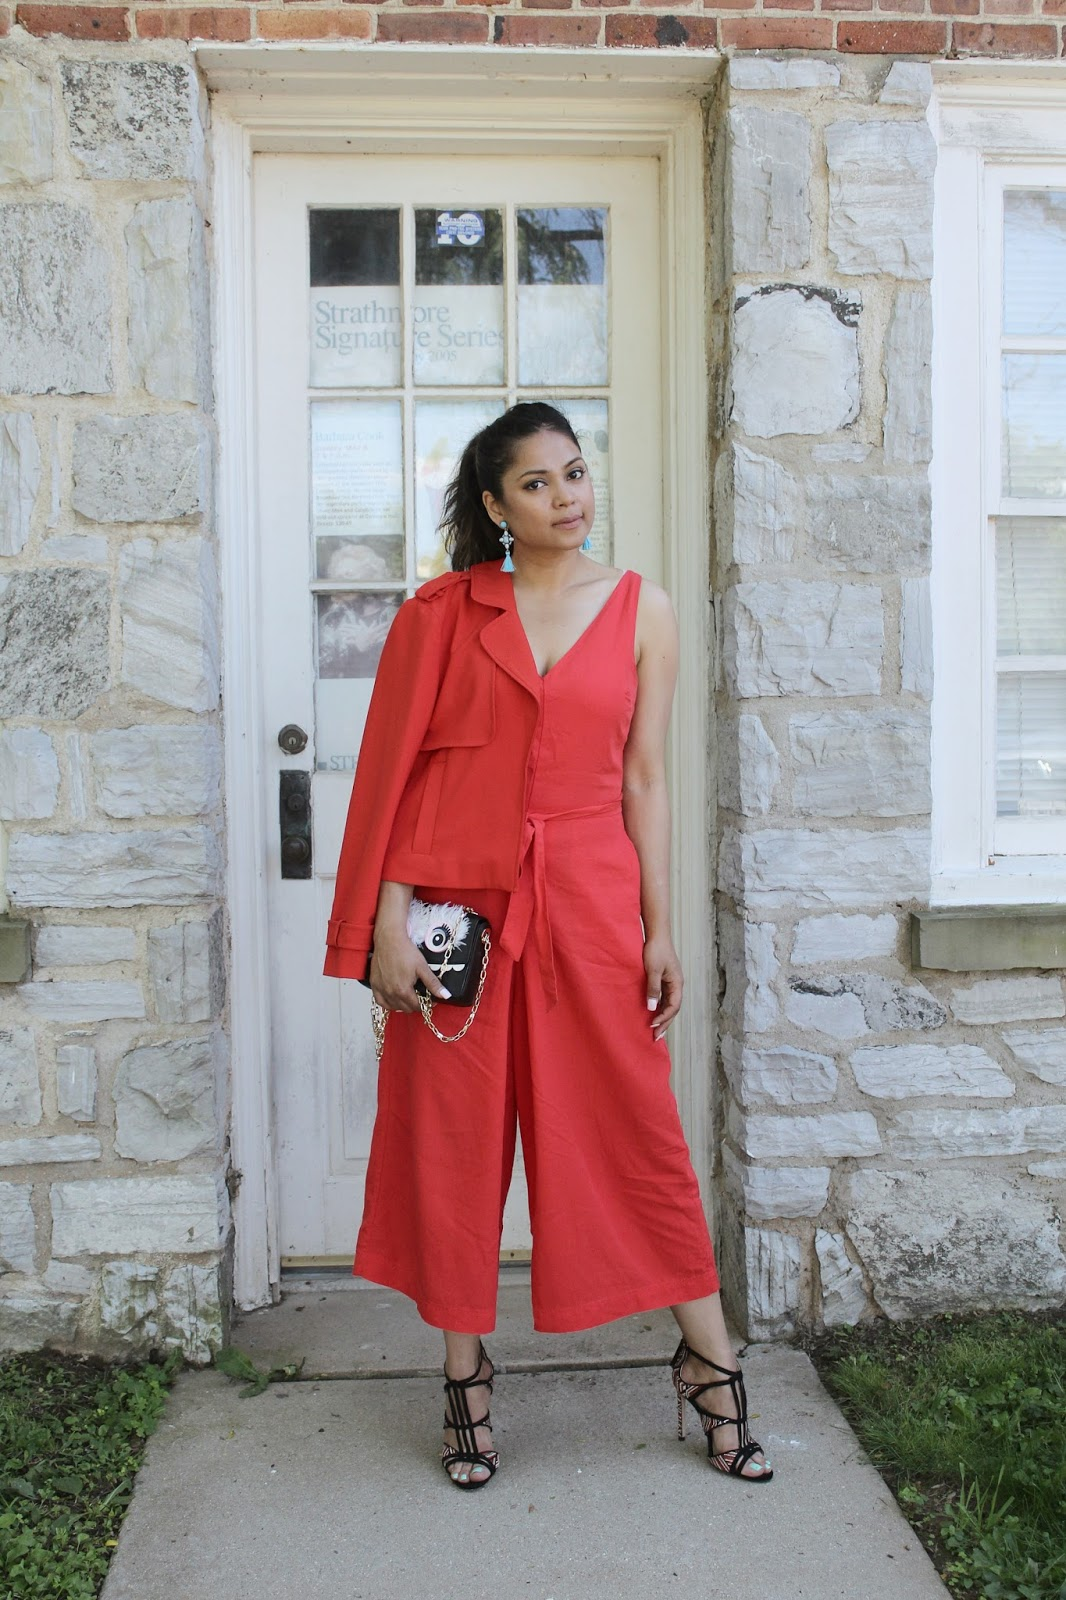 red jumpsuit, gap jumpsuit, street style, sugarfi bauble bar earrings, tassel earings, how to wer a red jumpsui9t, fashion blogger, mom style, color blocking, saumya